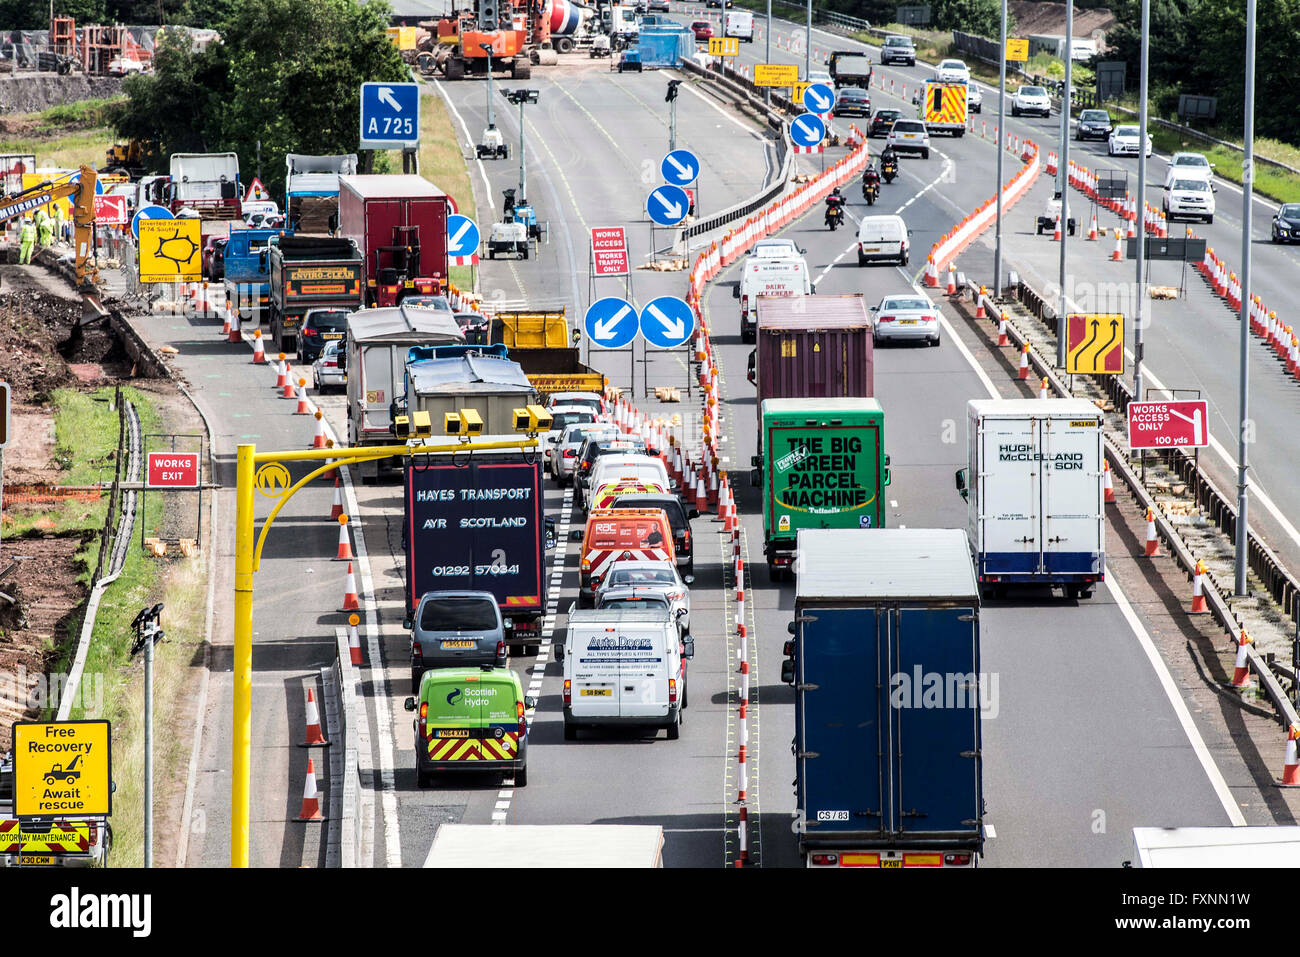 Average Speed Cameras in roadworks on M74 Stock Photo